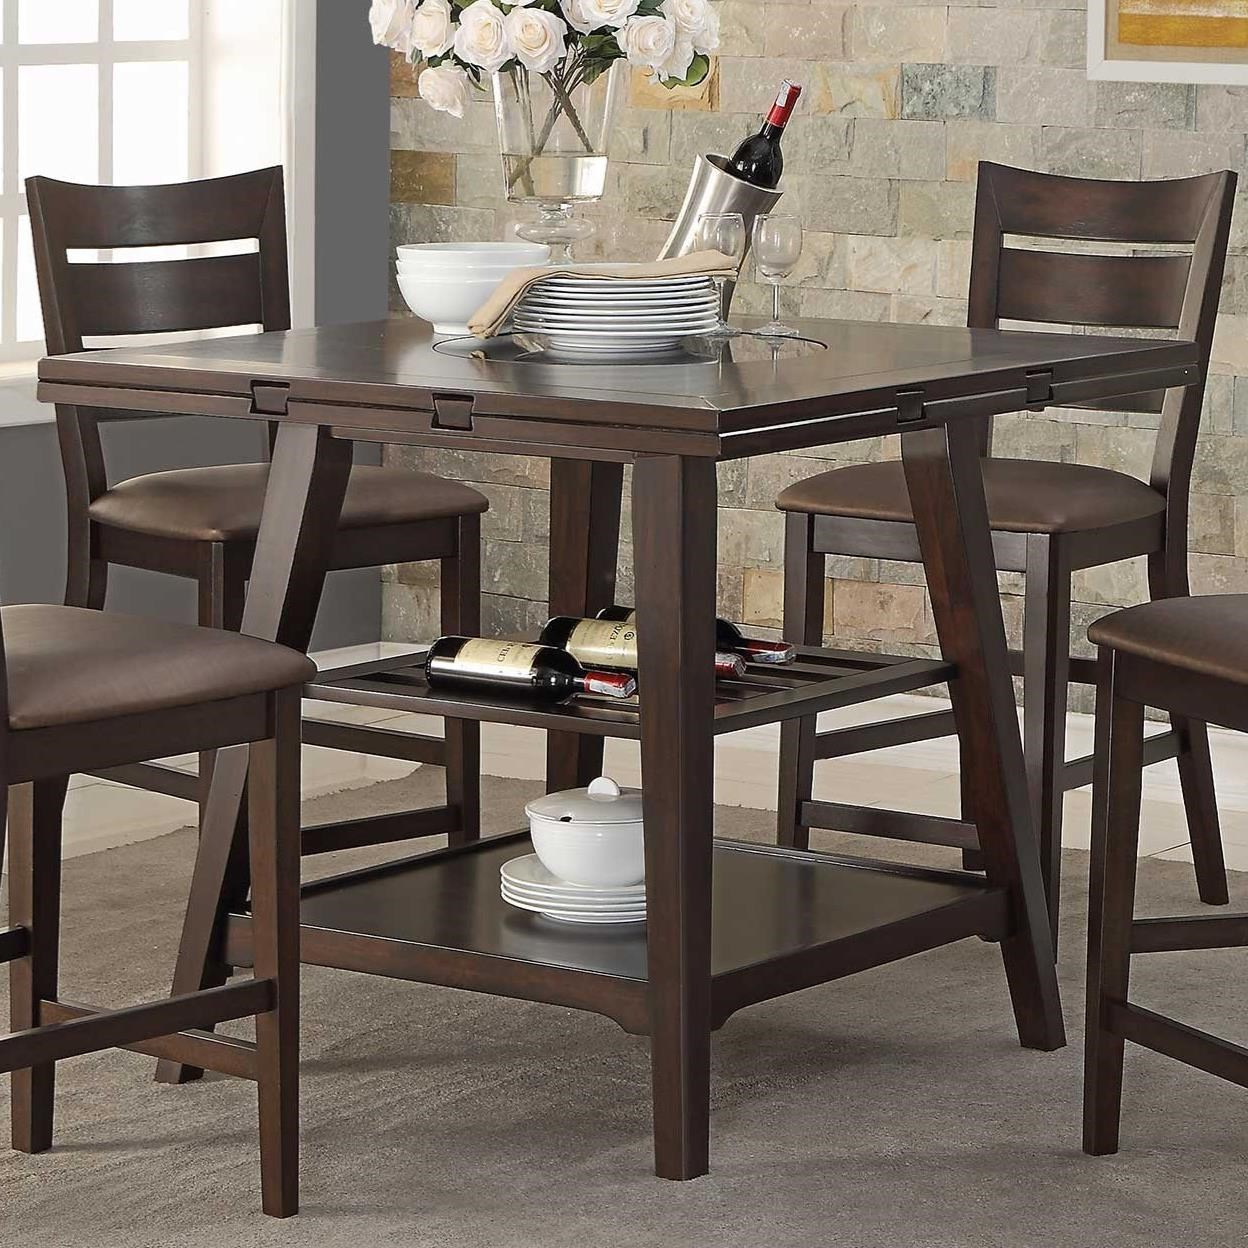 Popular Transitional 4 Seating Drop Leaf Casual Dining Tables Regarding Winners Only Parkside Drop Leaf Counter Height Table With (View 15 of 25)